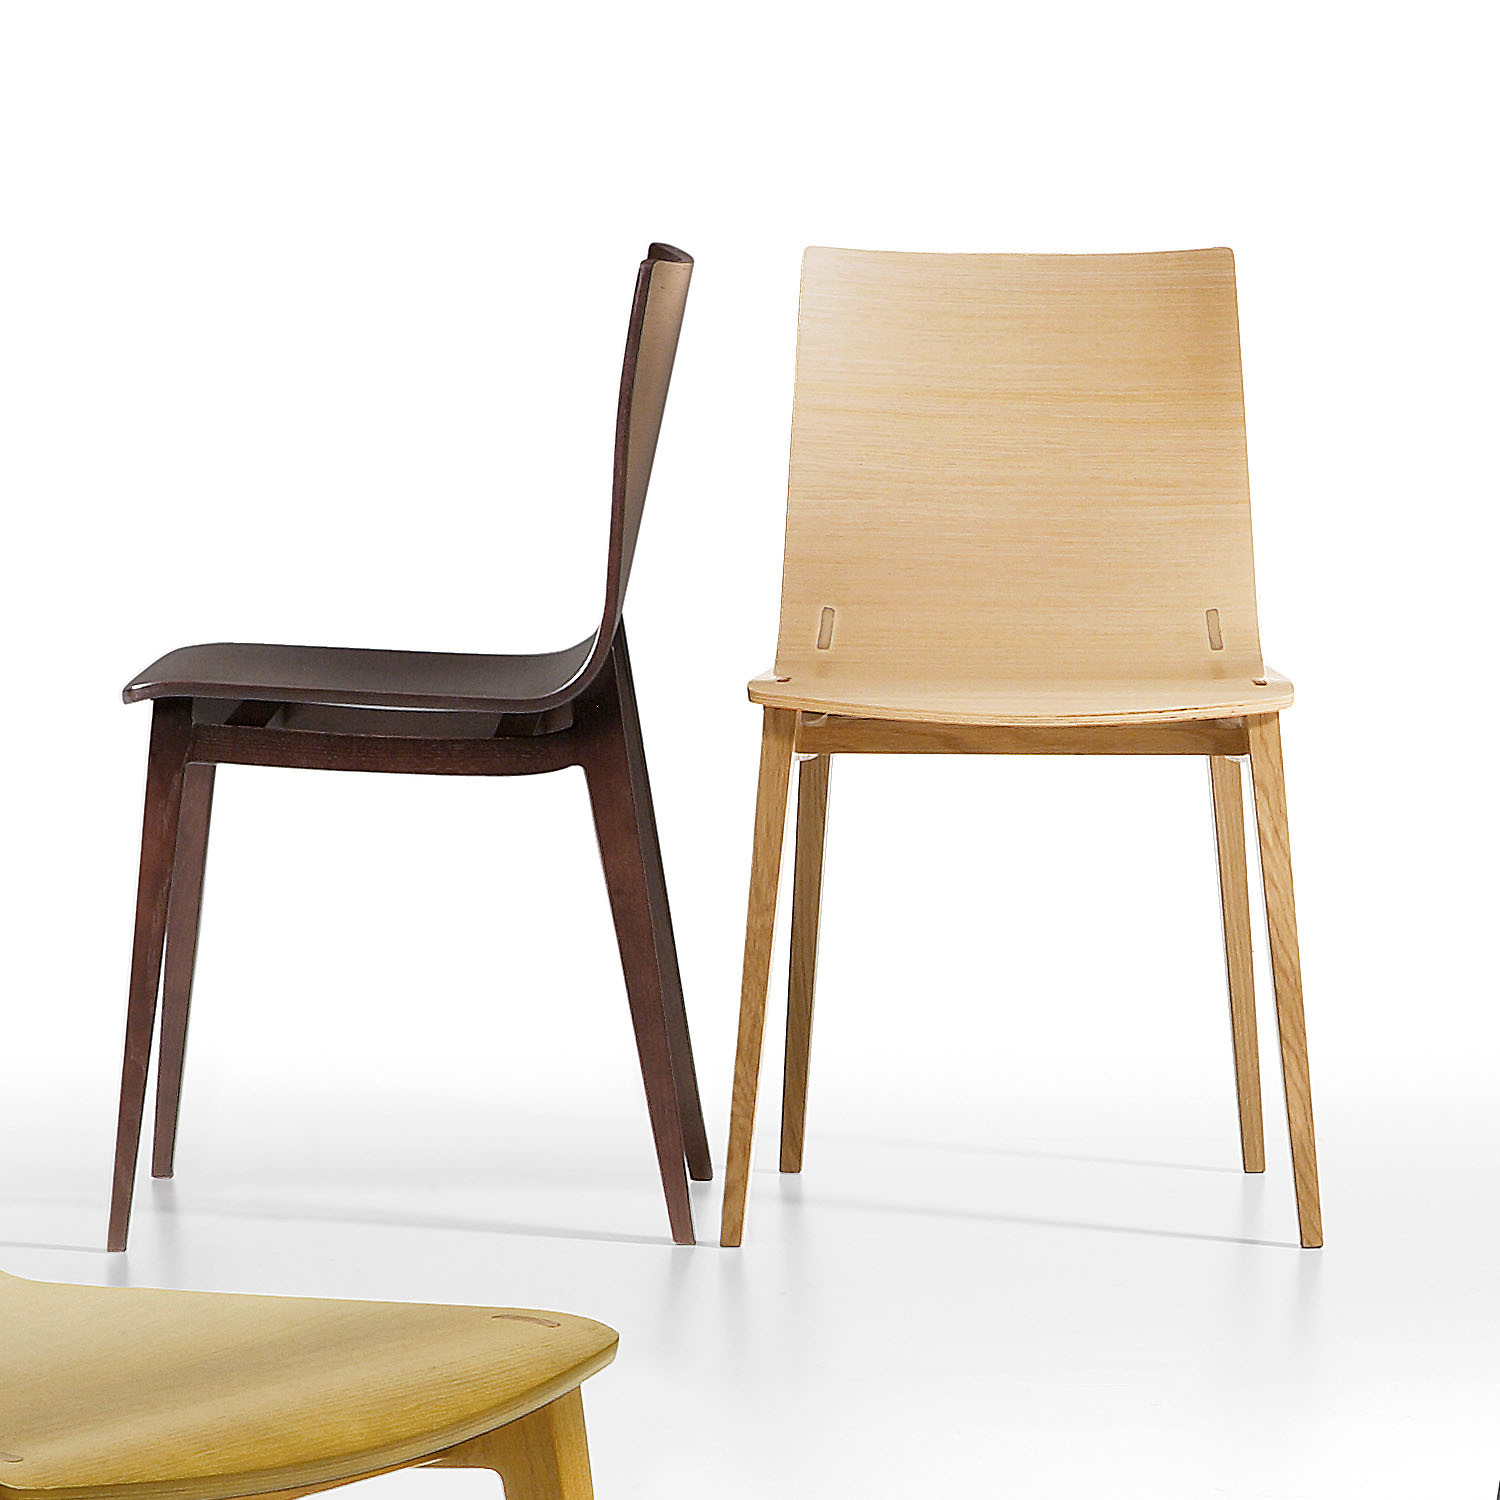 Emma Office Wooden Breakout Chairs